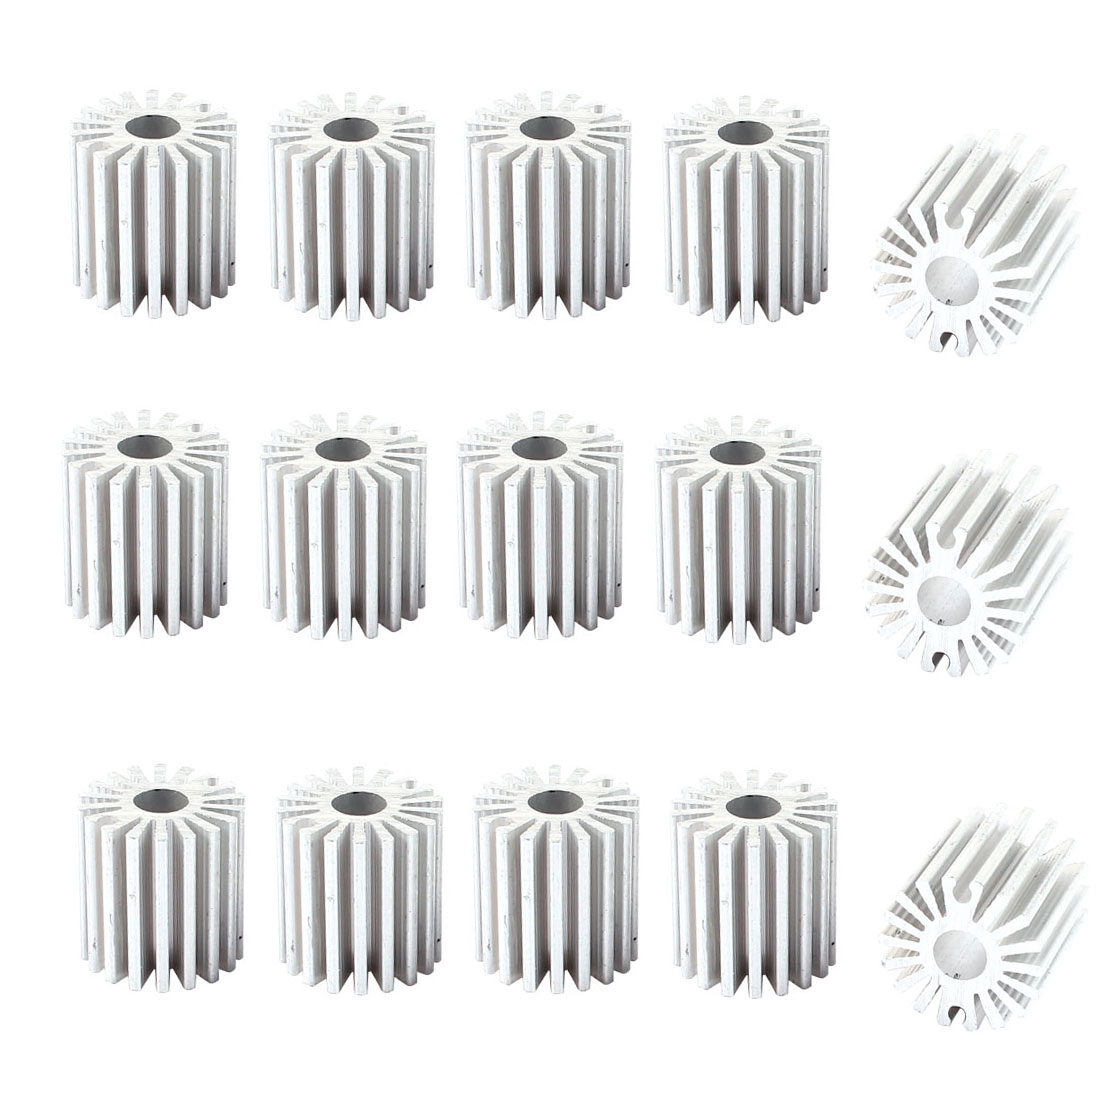 15pcs Aluminium Radiator Heatsink Cooling Fin Silver Tone 20x6x20mm for Led Light